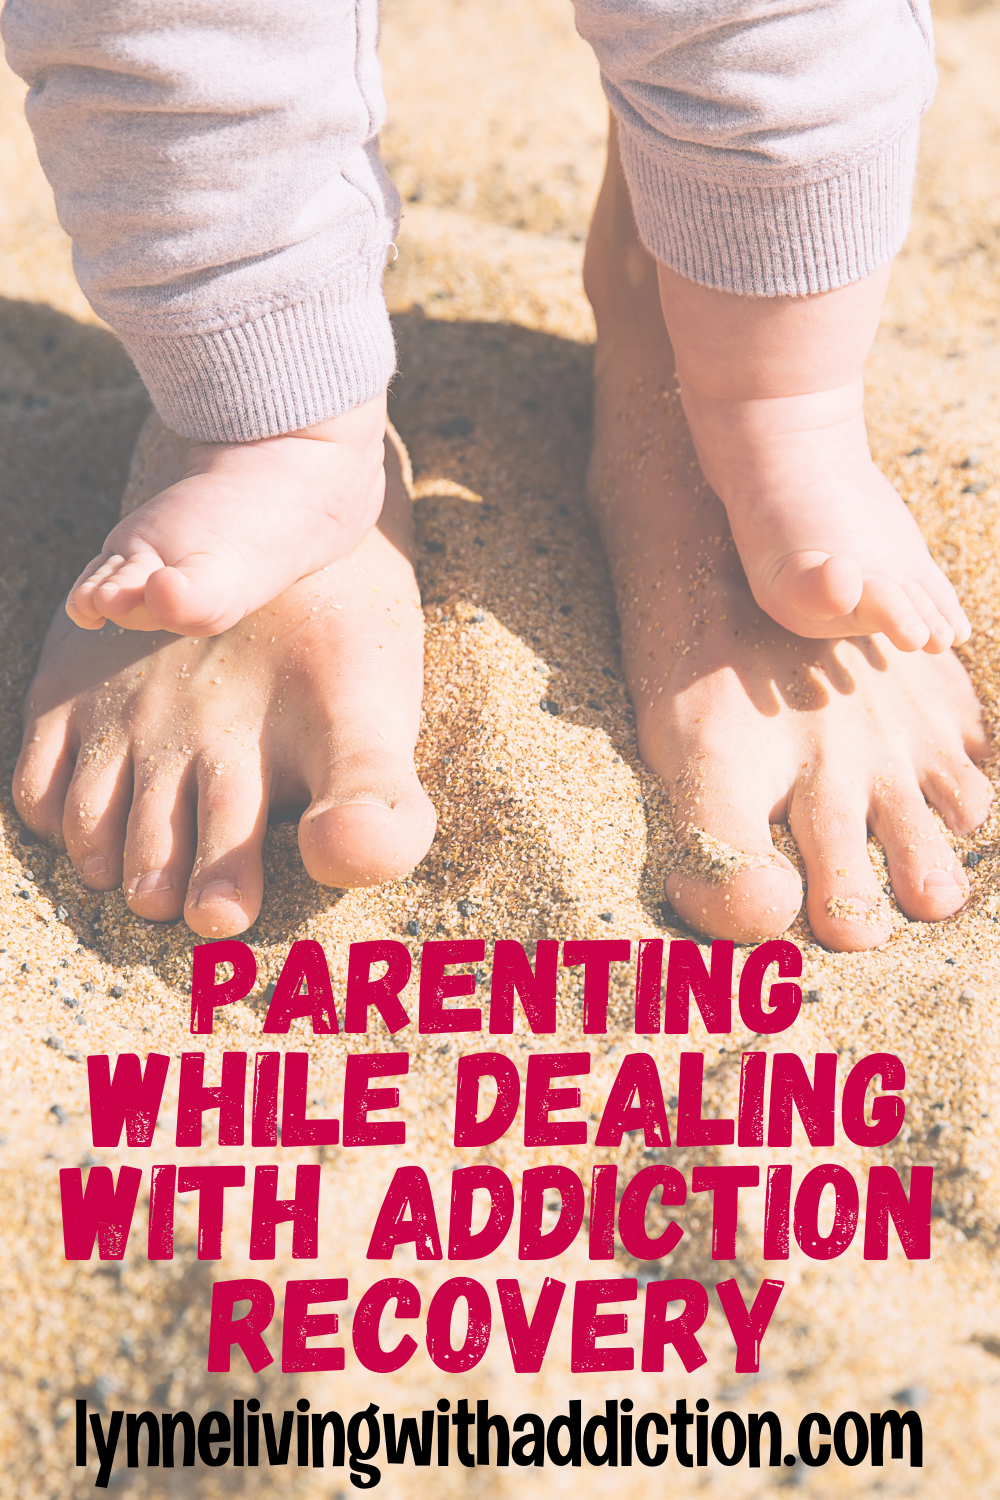 Parenting While Dealing With Addiction Recovery